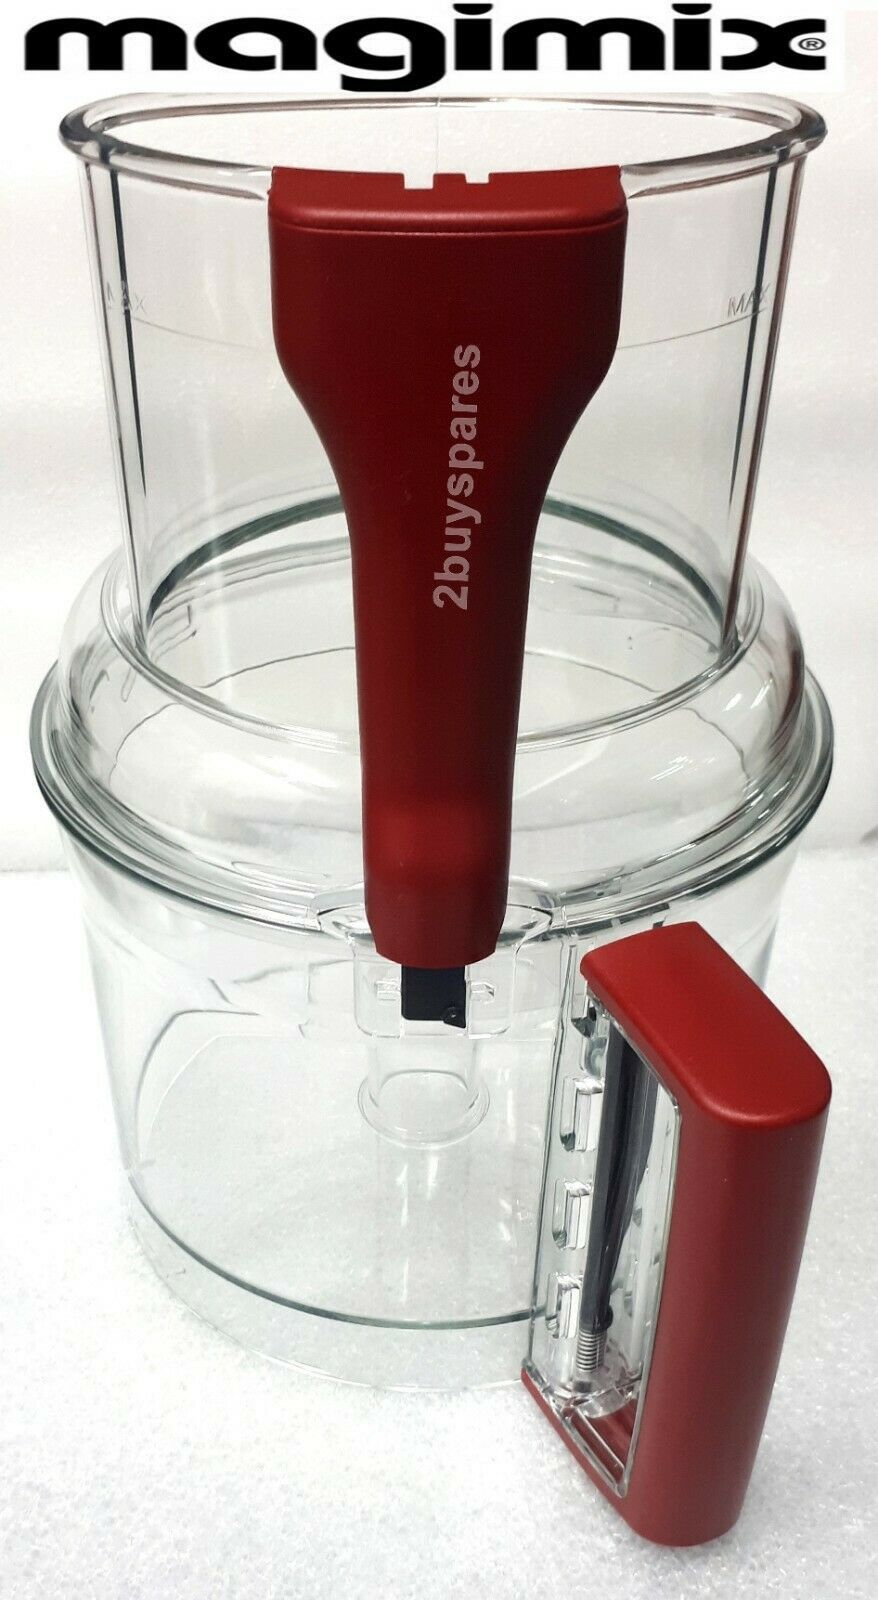 Primary image for Magimix XL Lid +Bowl Red Handle , 5200xl, 5150,6200